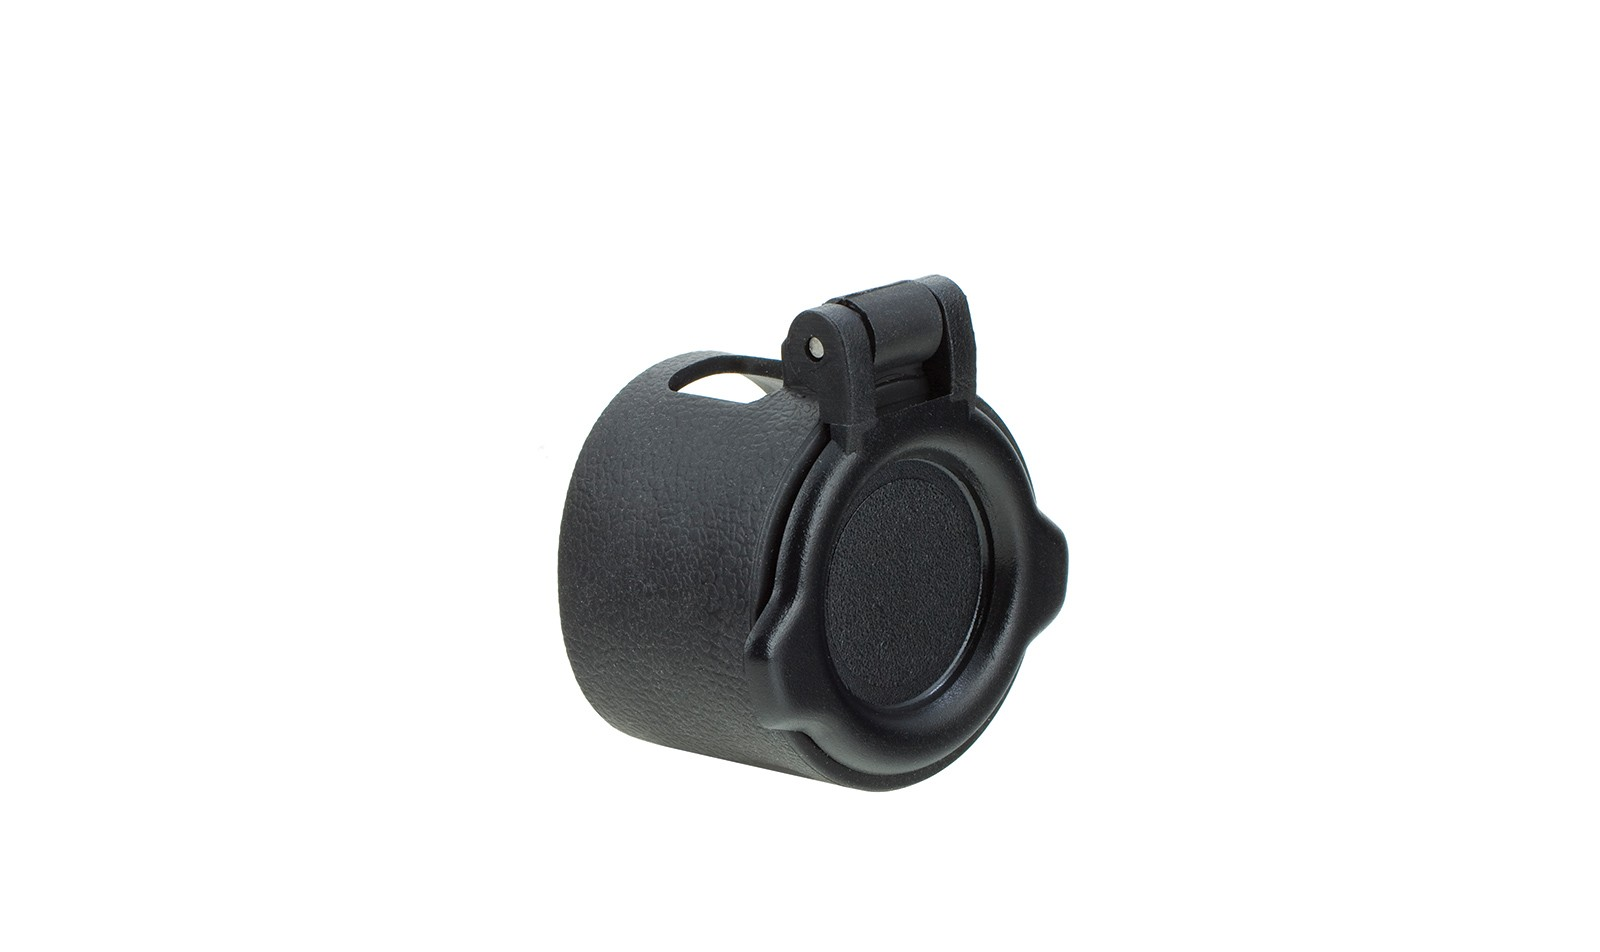 Trijicon<sup>®</sup> Eyepiece Flip Cap for  ACOG<sup>®</sup> 4x32 w/bosses